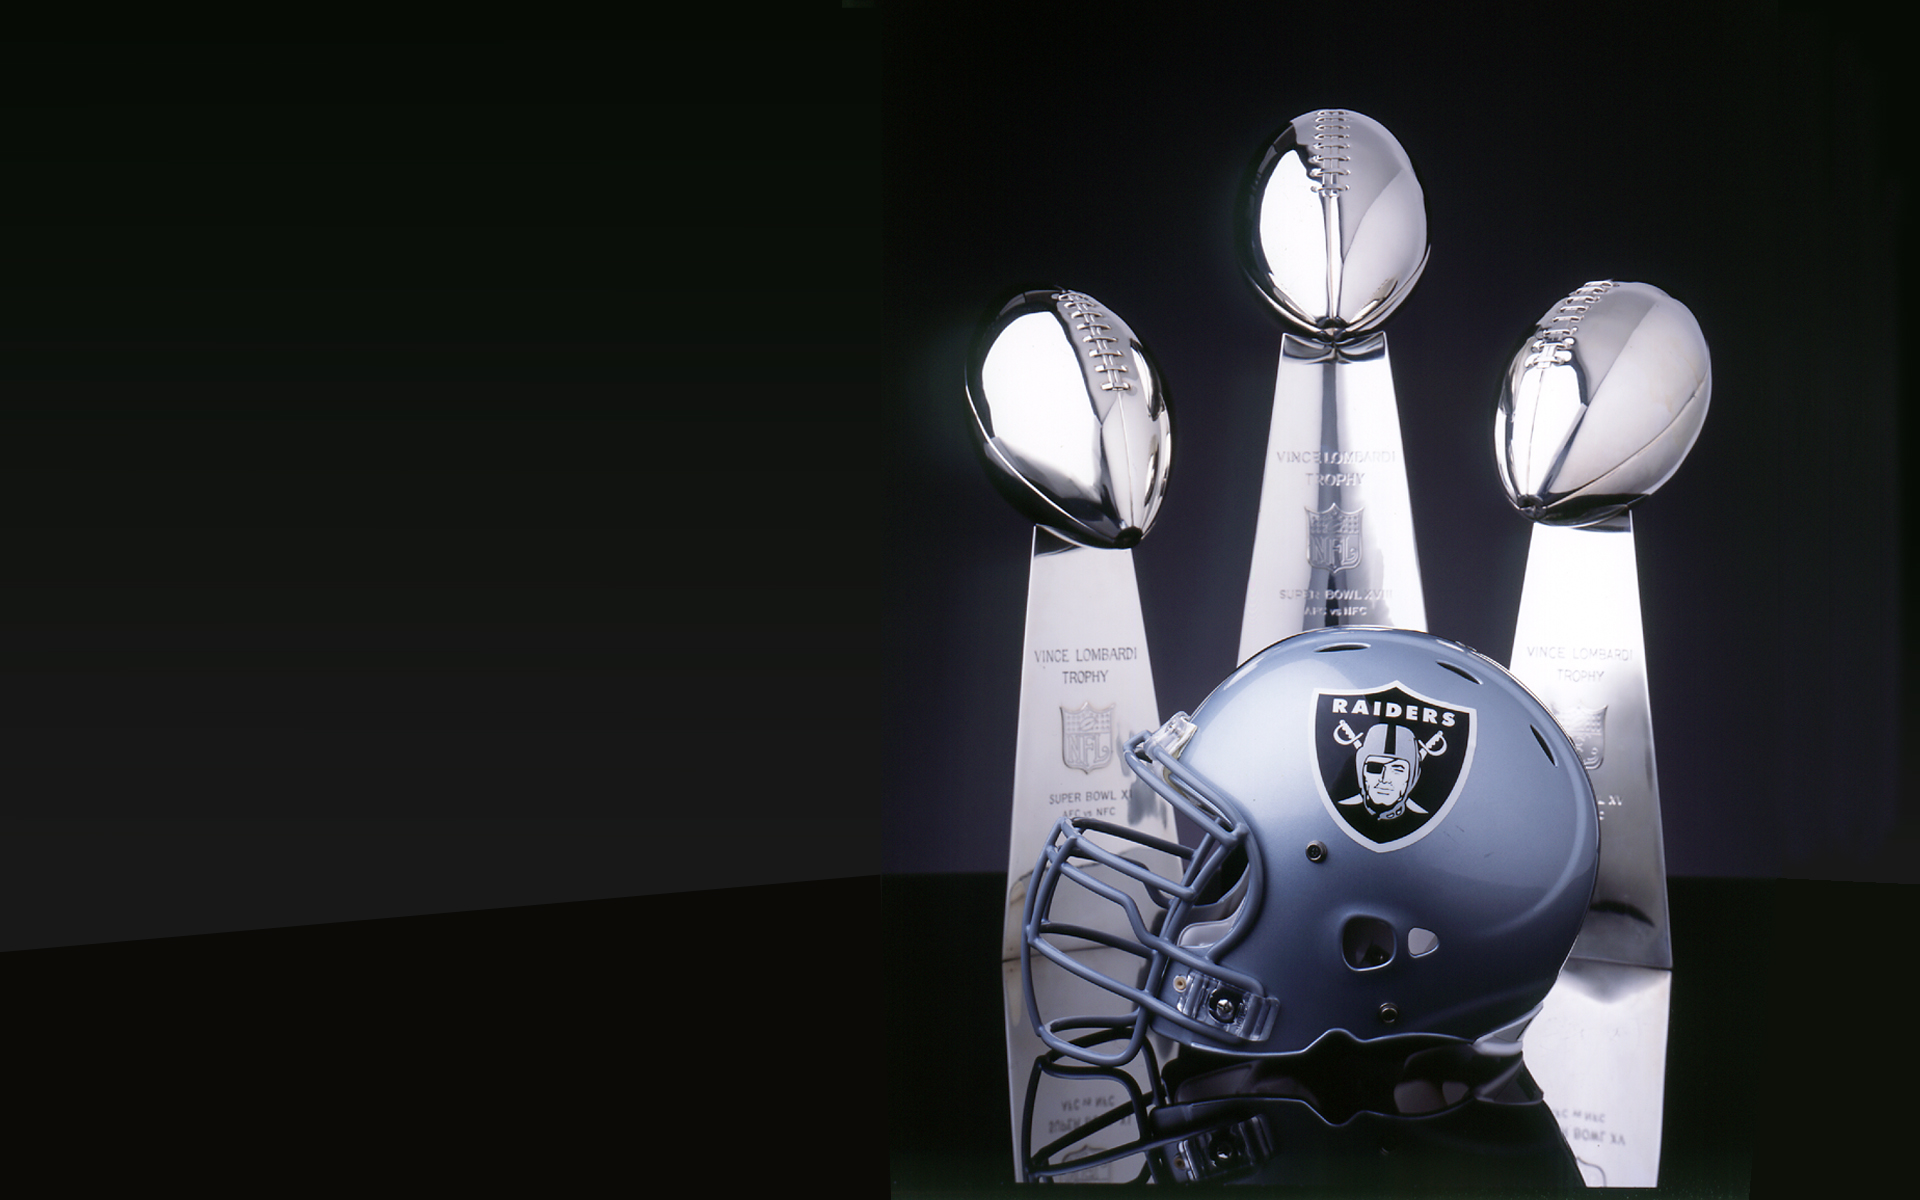 Oakland Raiders Wallpaper Images